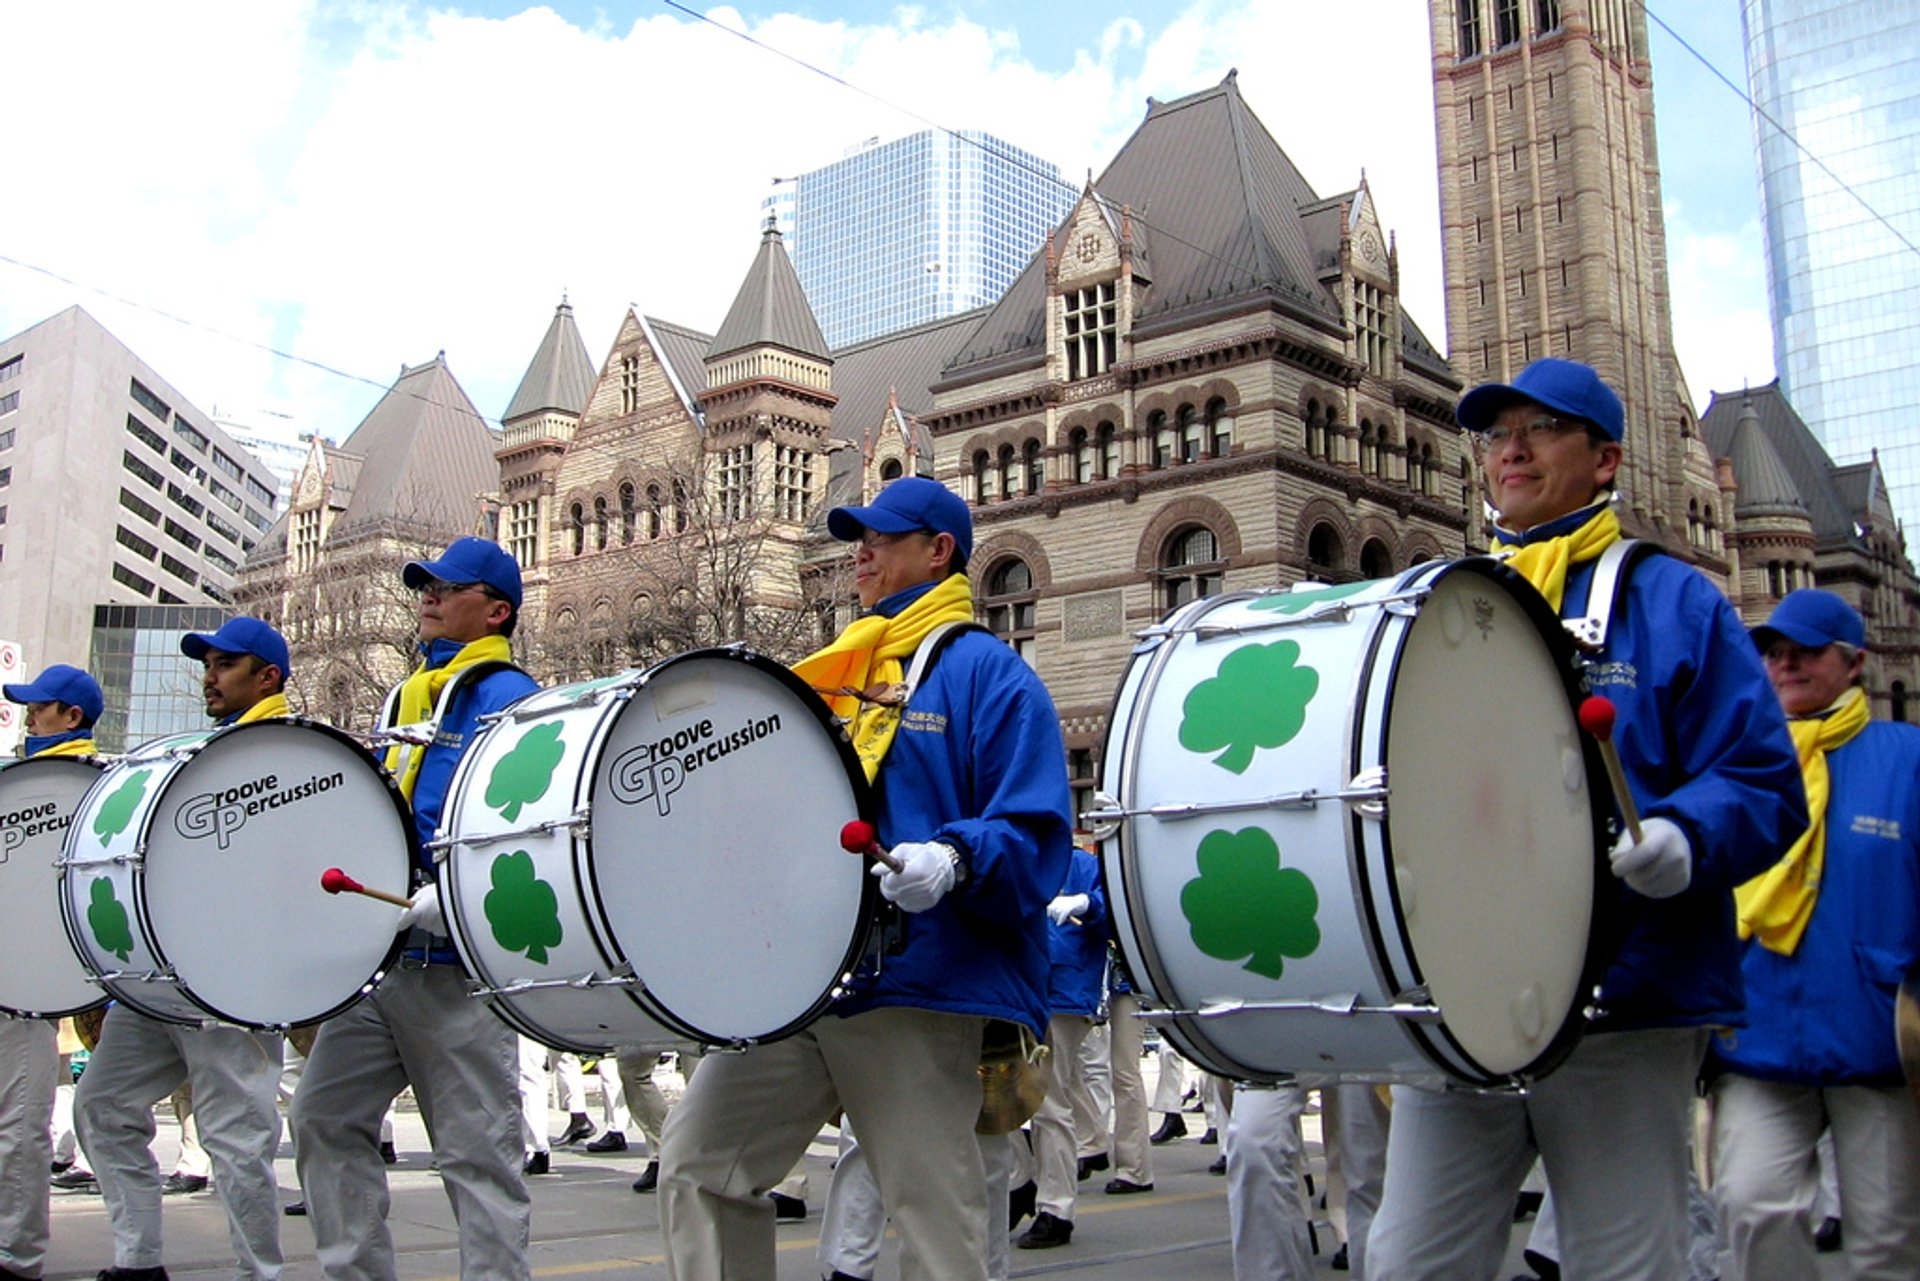 Best time for St. Patrick's Day Parade in Toronto 2020